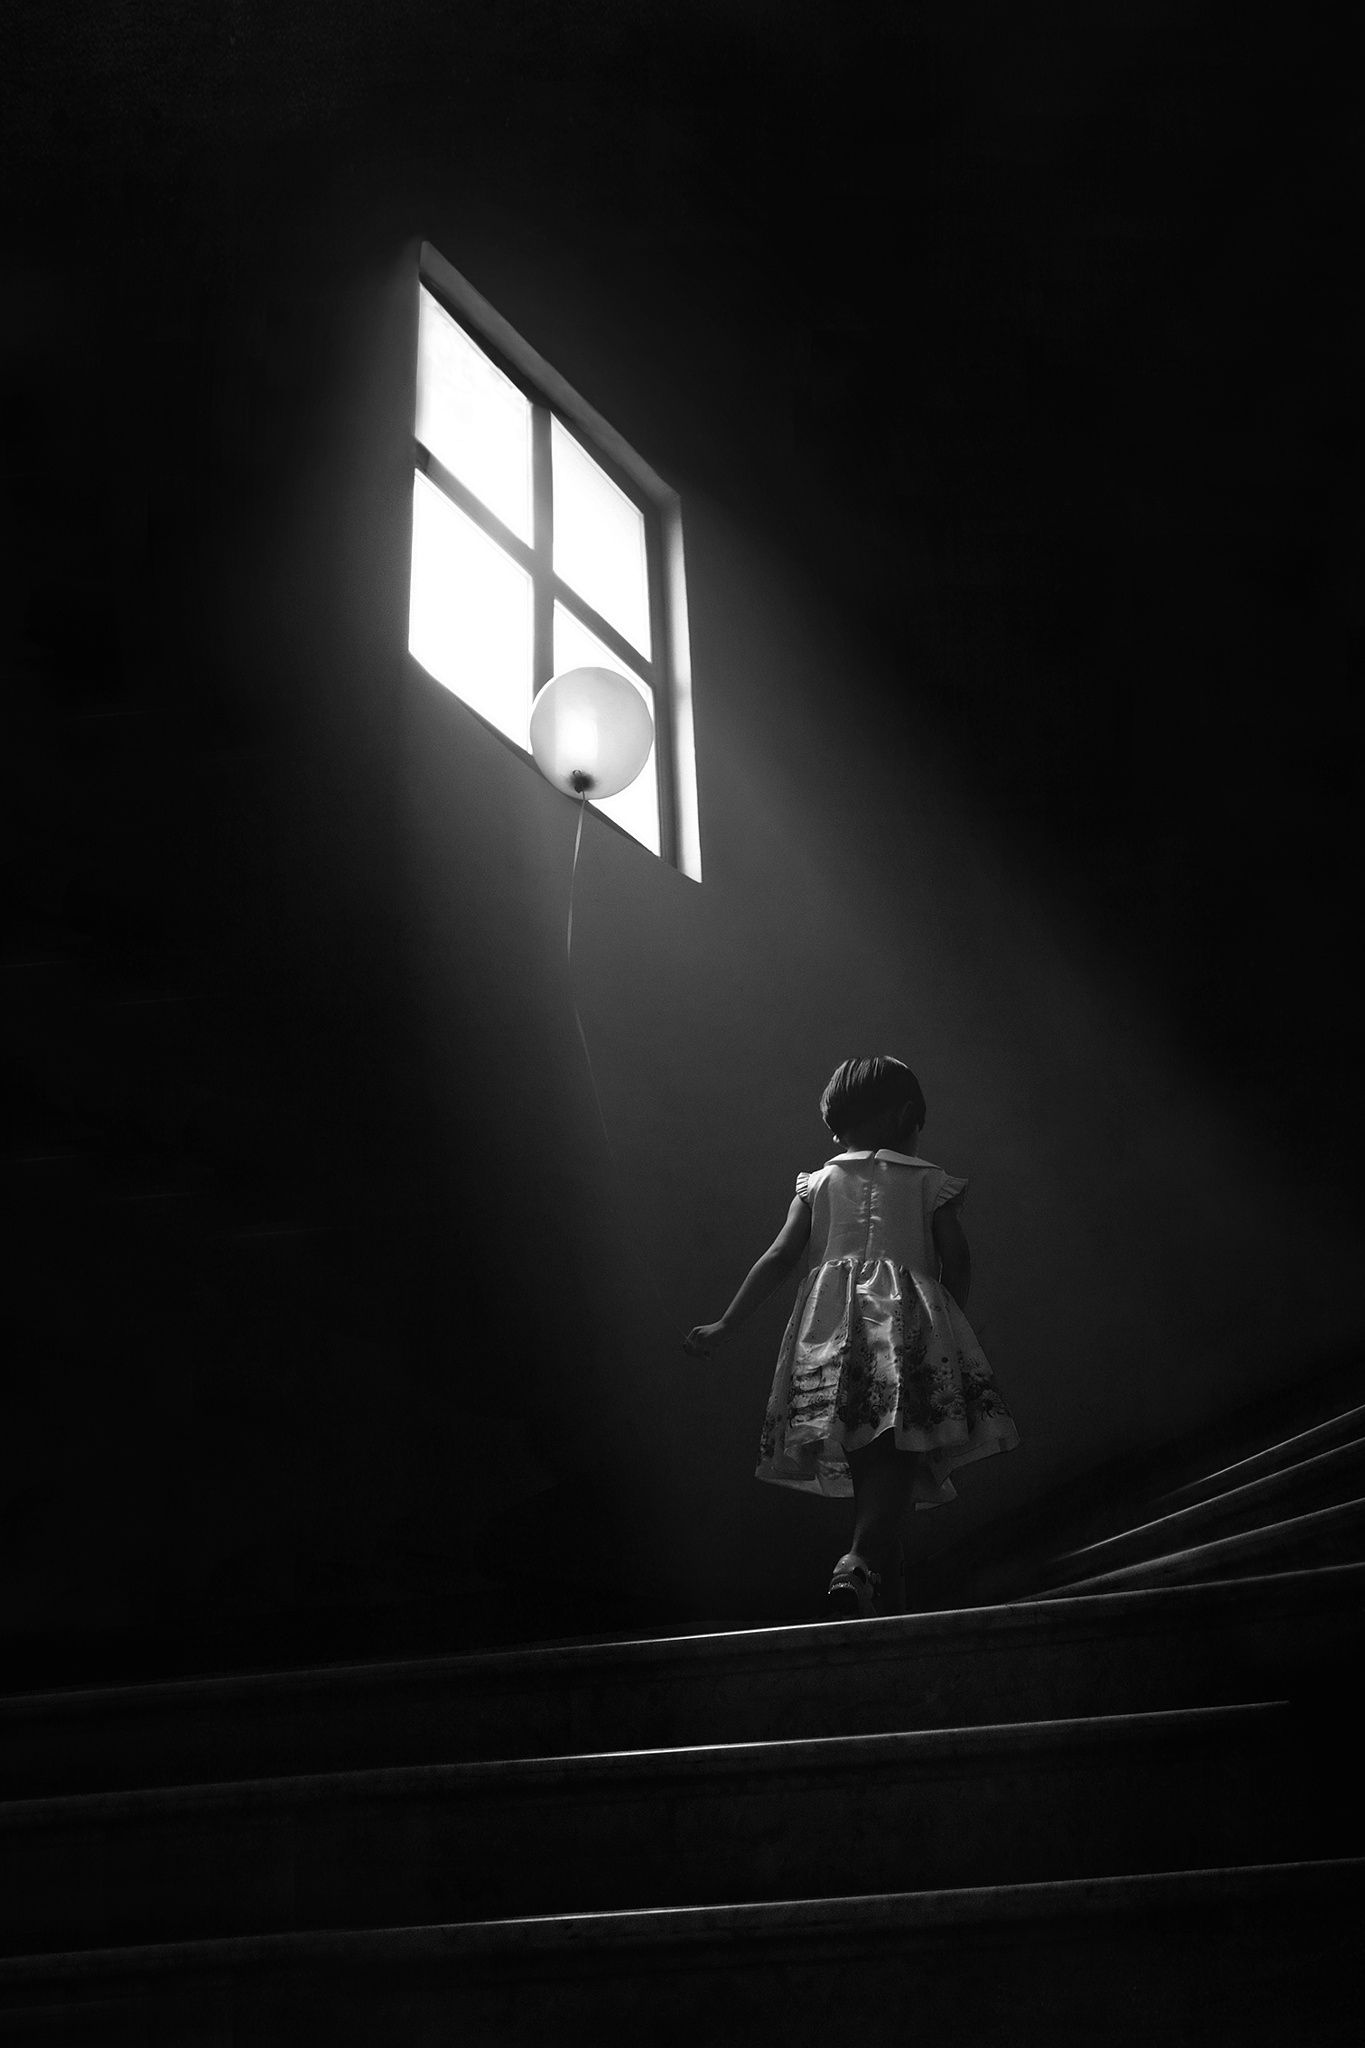 Untitled black and white photo by 米 袋 500px making my heart